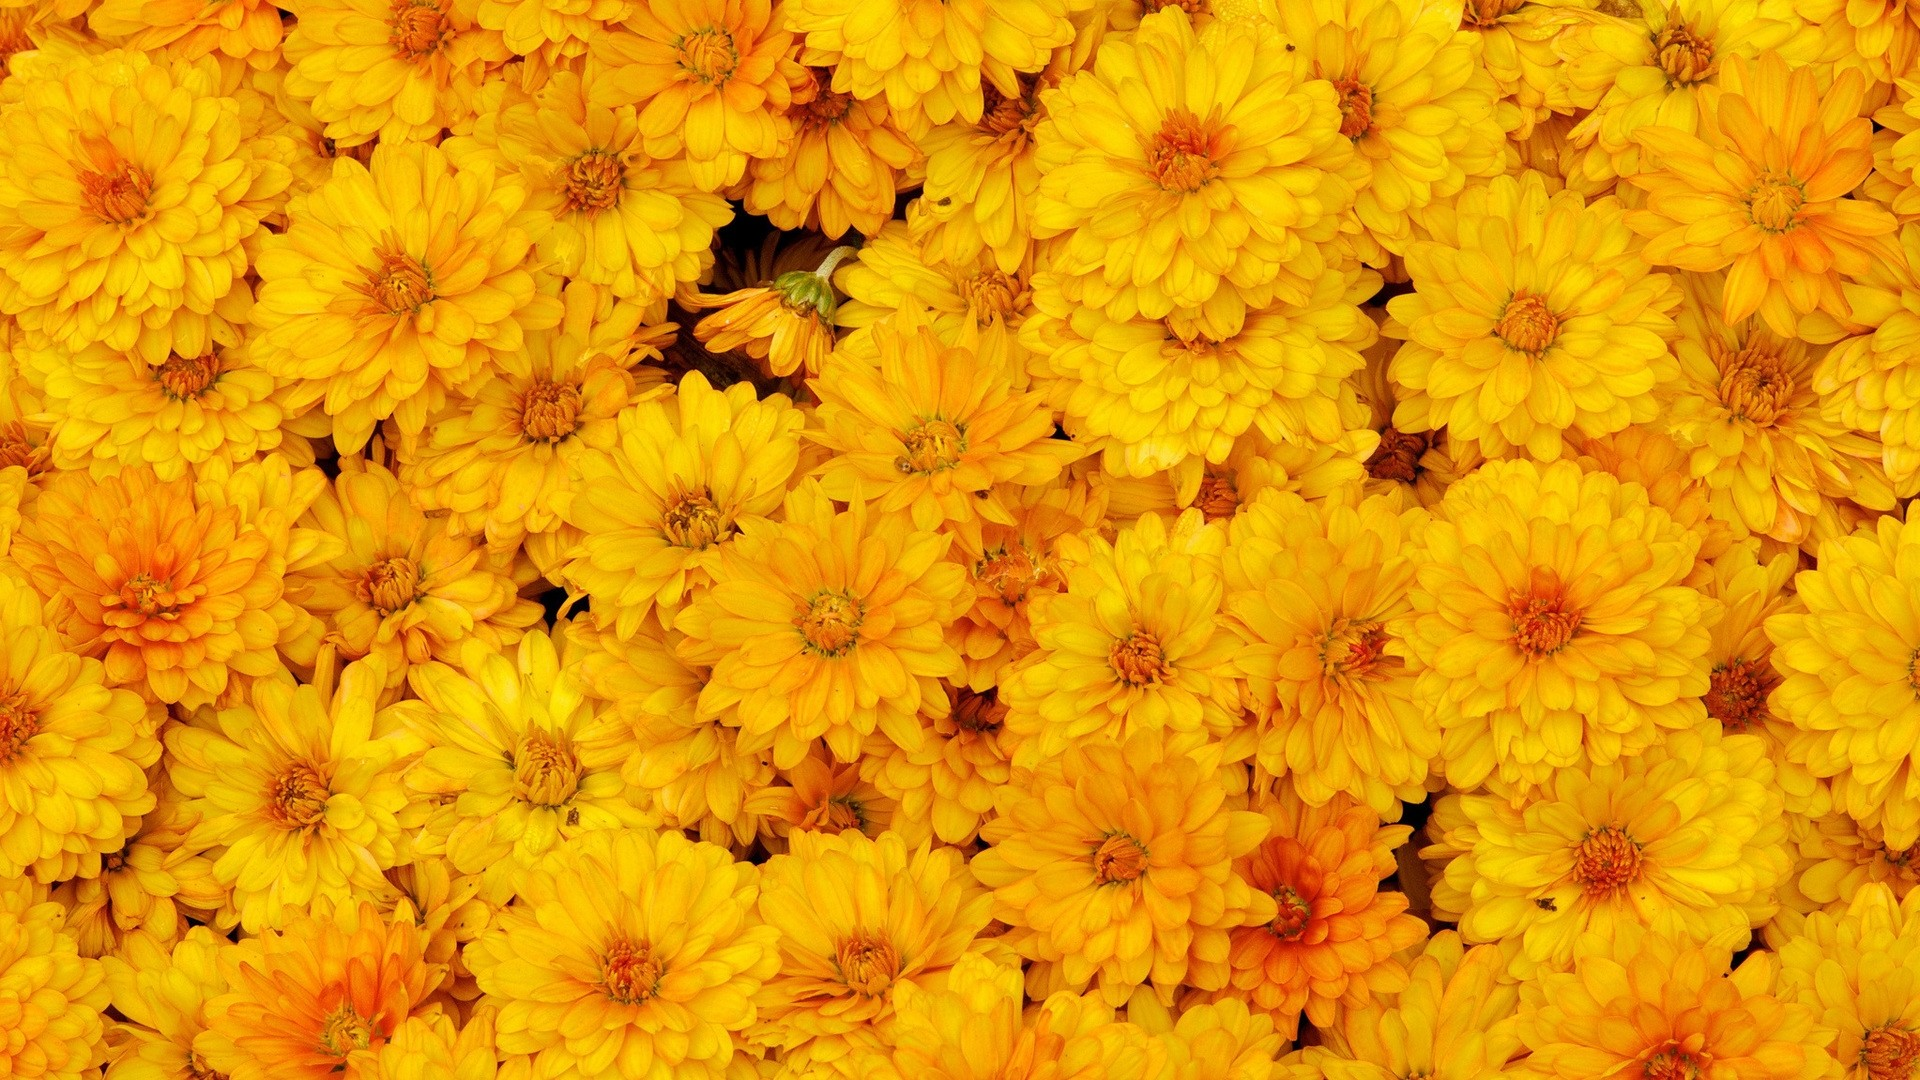 Yellow Flower Free Wallpaper and Background